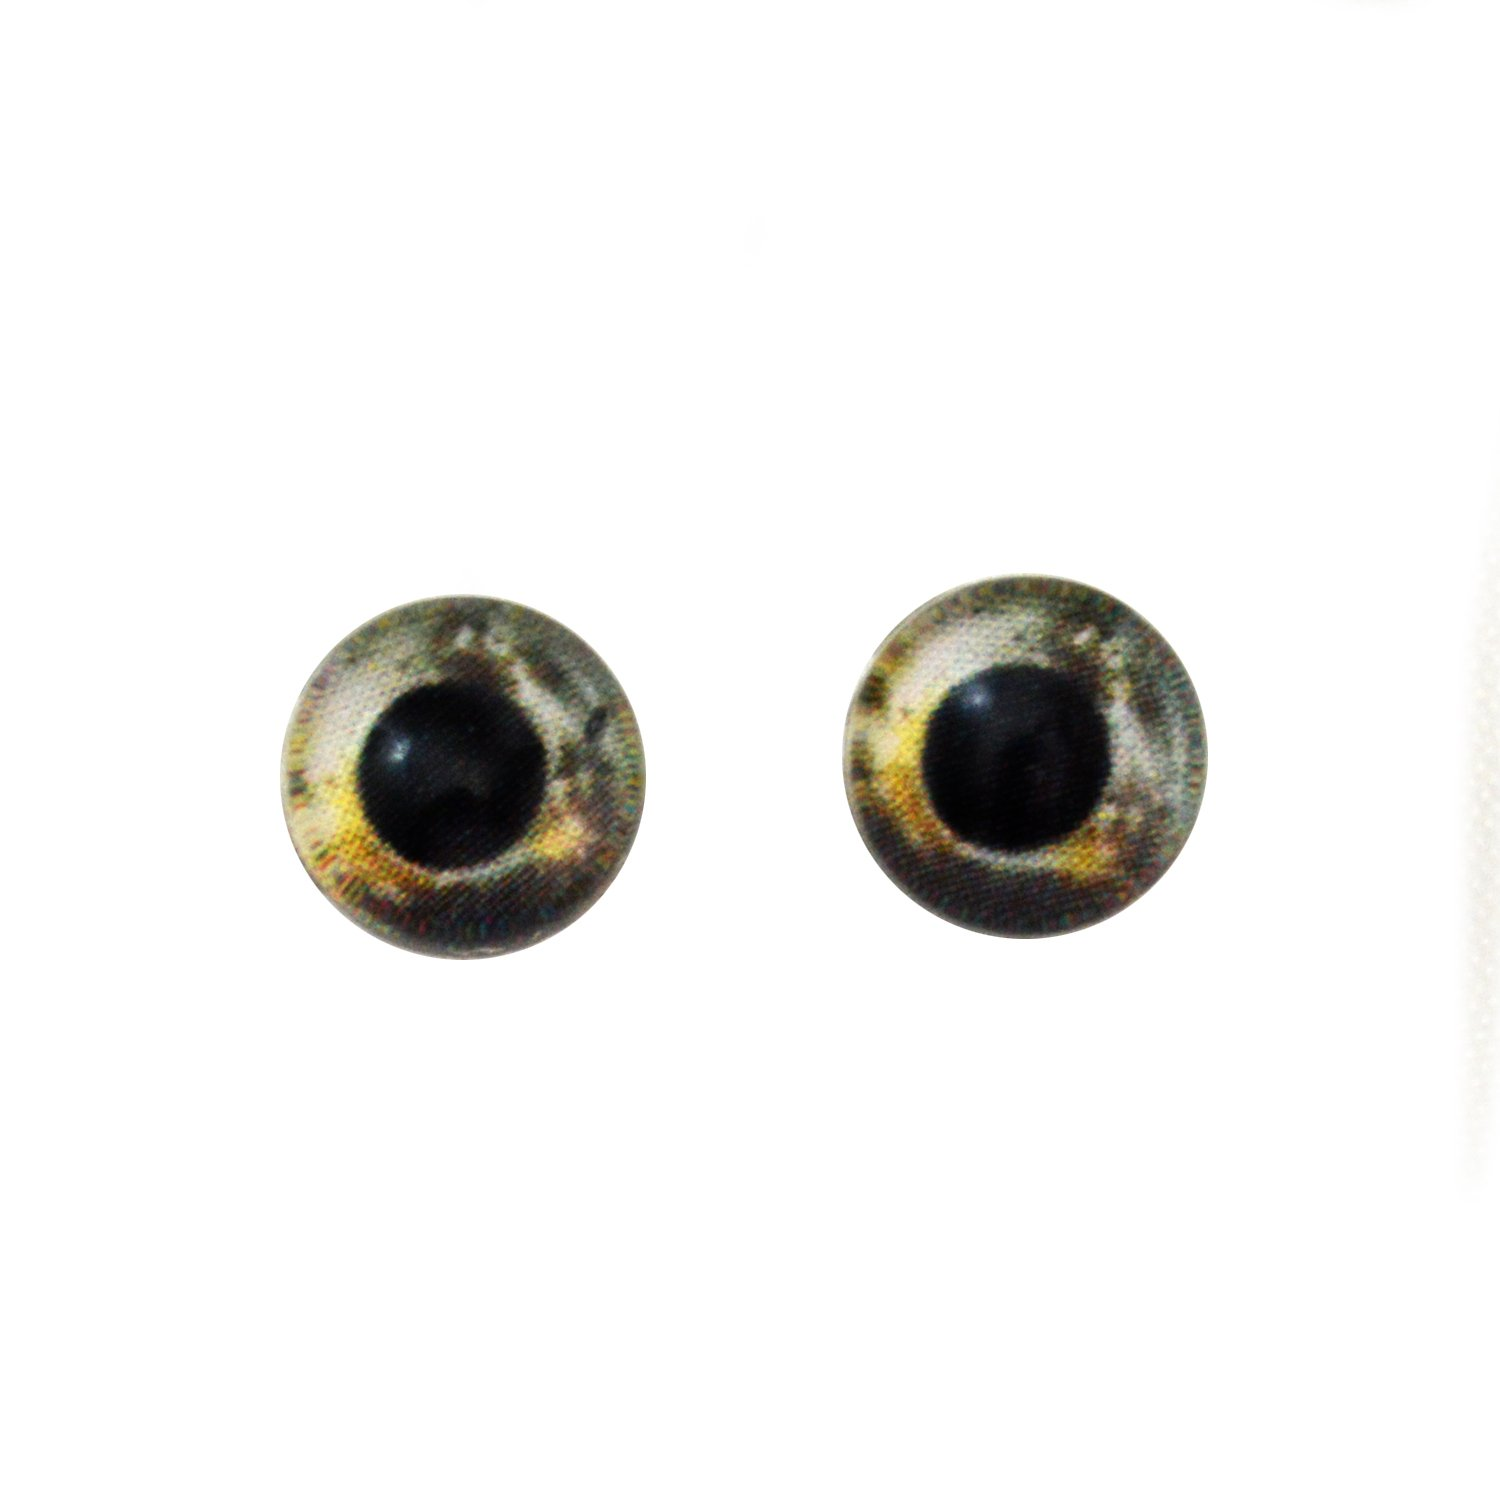 14mm Koi Fish Glass Eyes Realistic Animal Art Dolls Taxidermy Sculptures or Jewelry Making Crafts Matching Set of 2